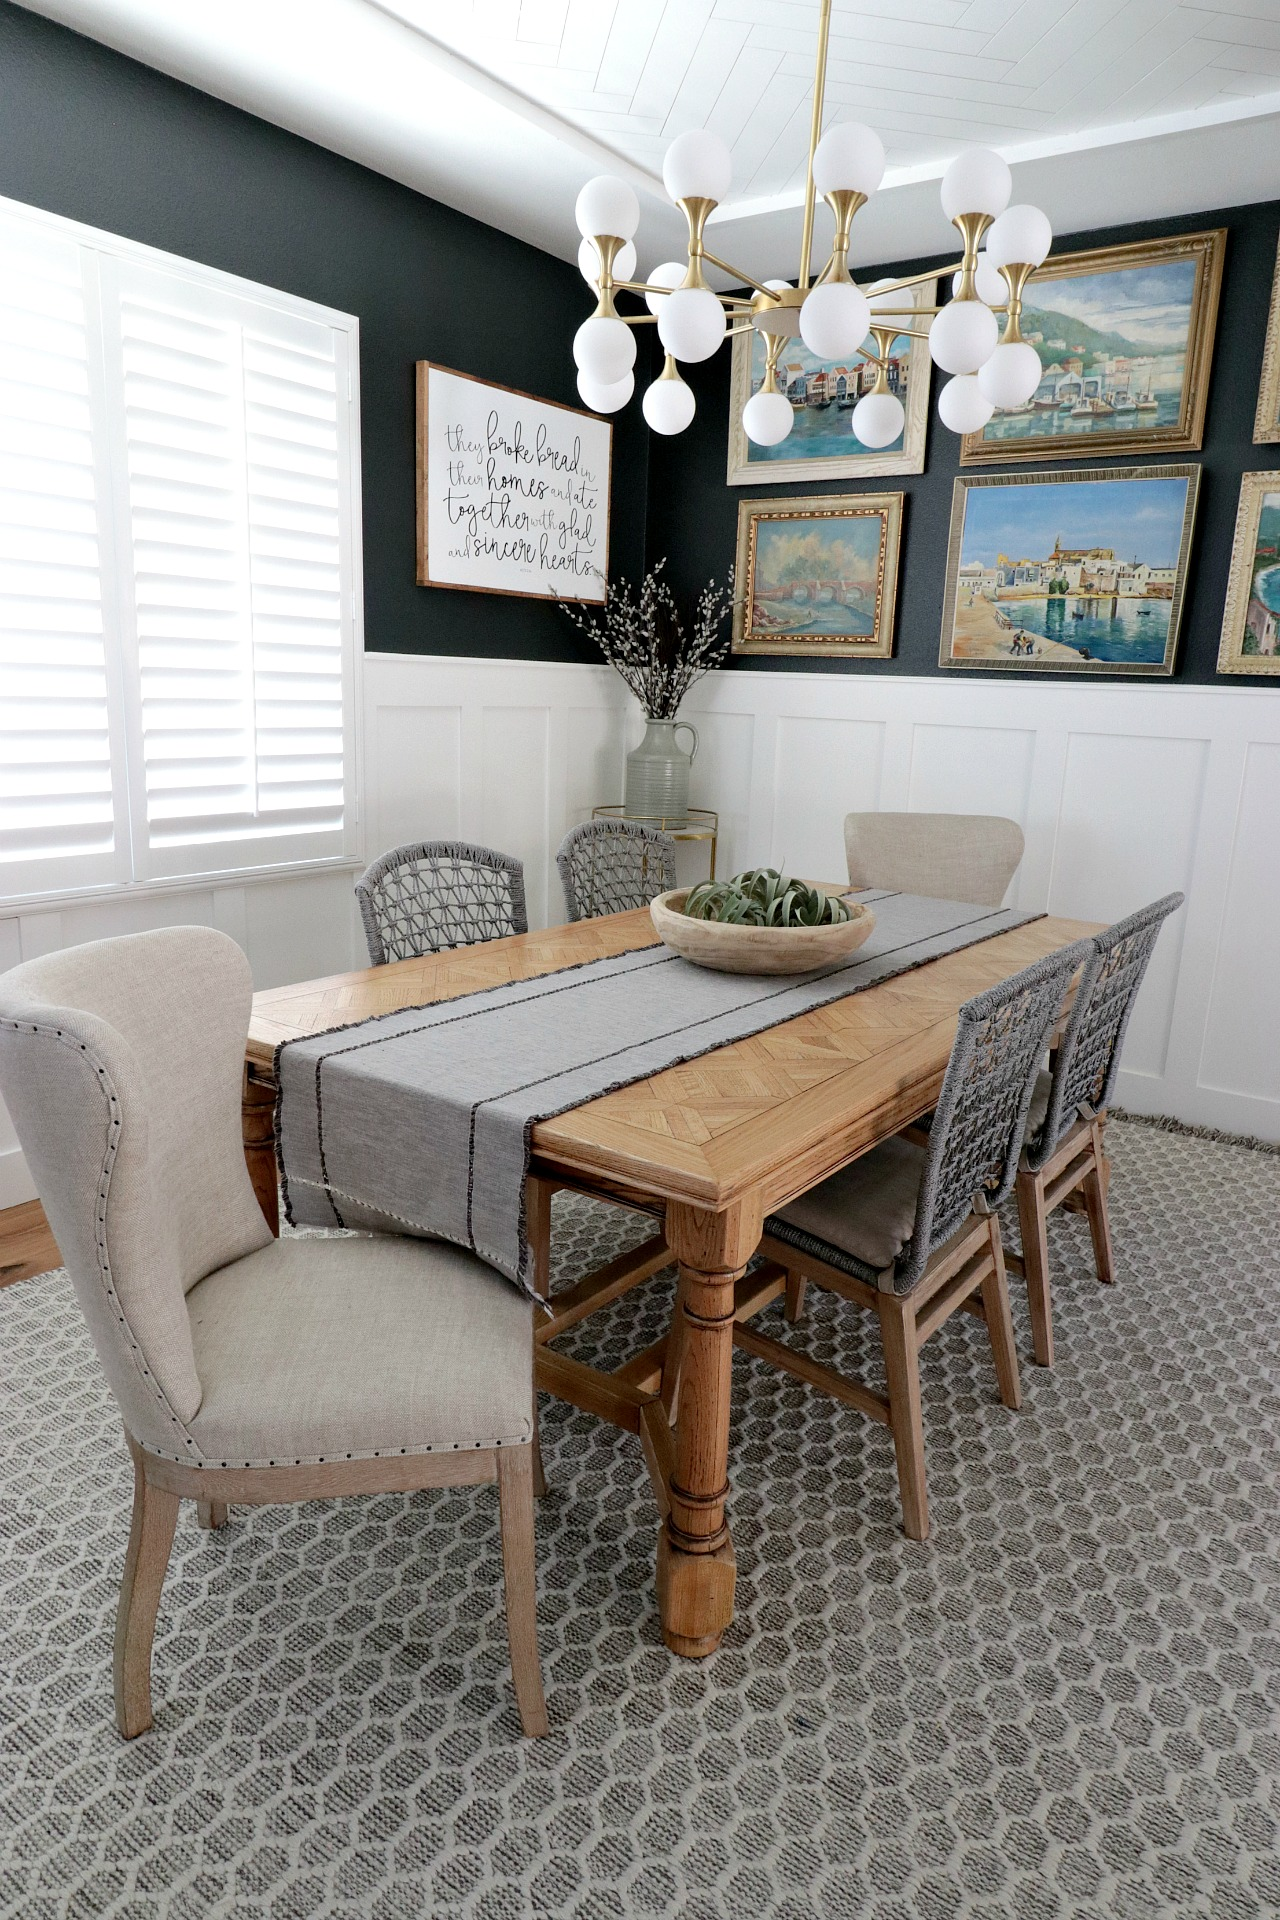 When I Discovered Those Gorgeous Lace Dining Chairs Were From Essentials For Living Immediately Got Onto Their Website